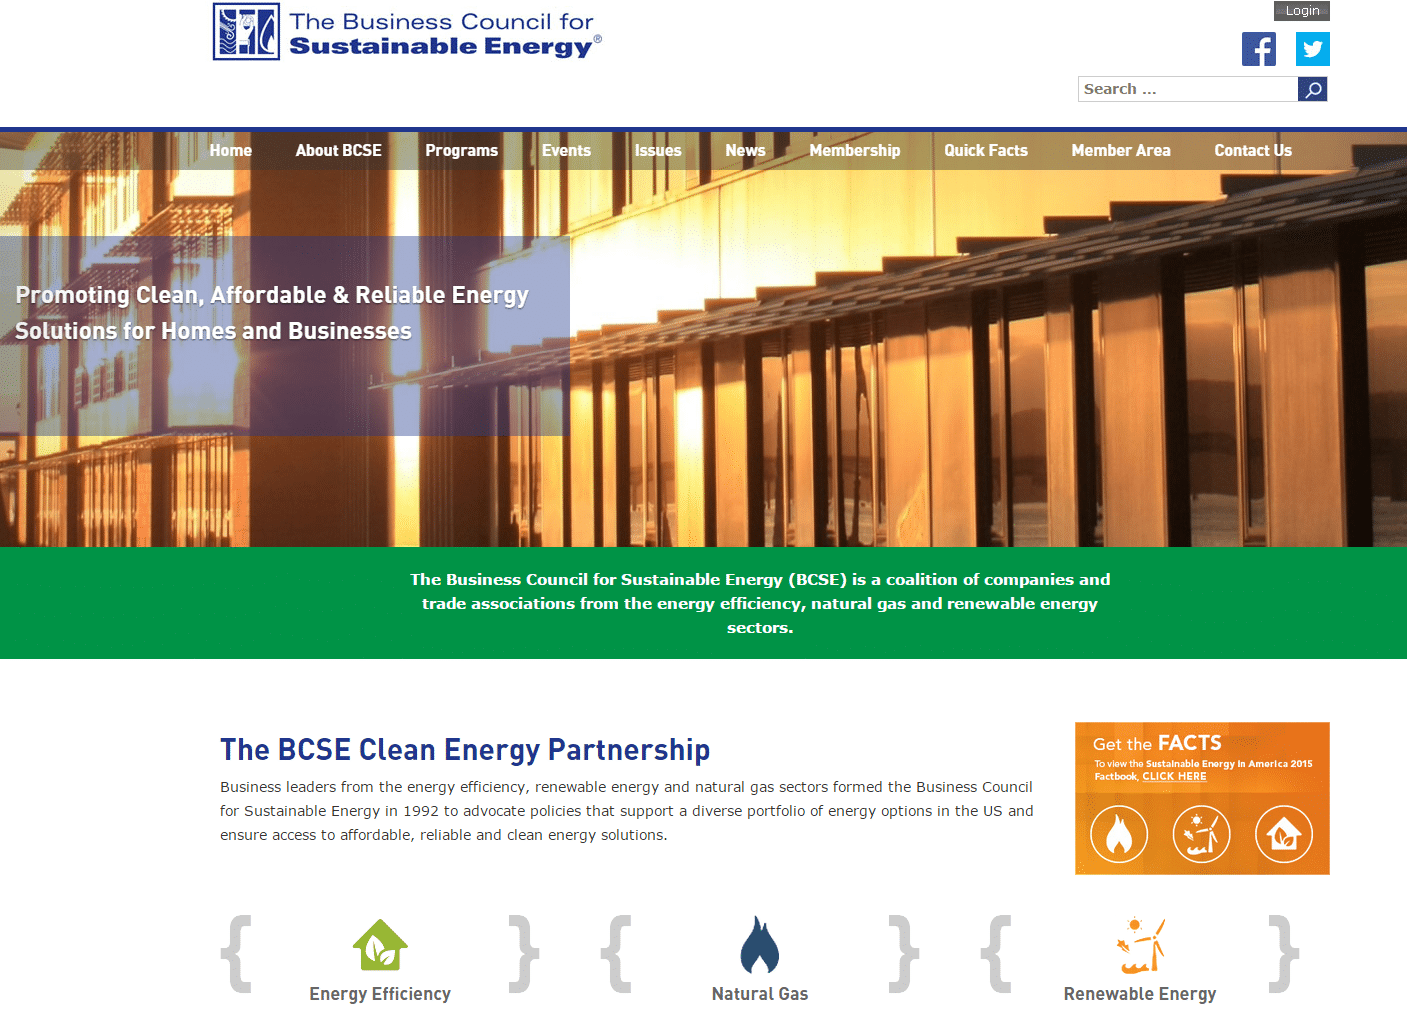 The Business Council for Sustainable Energy